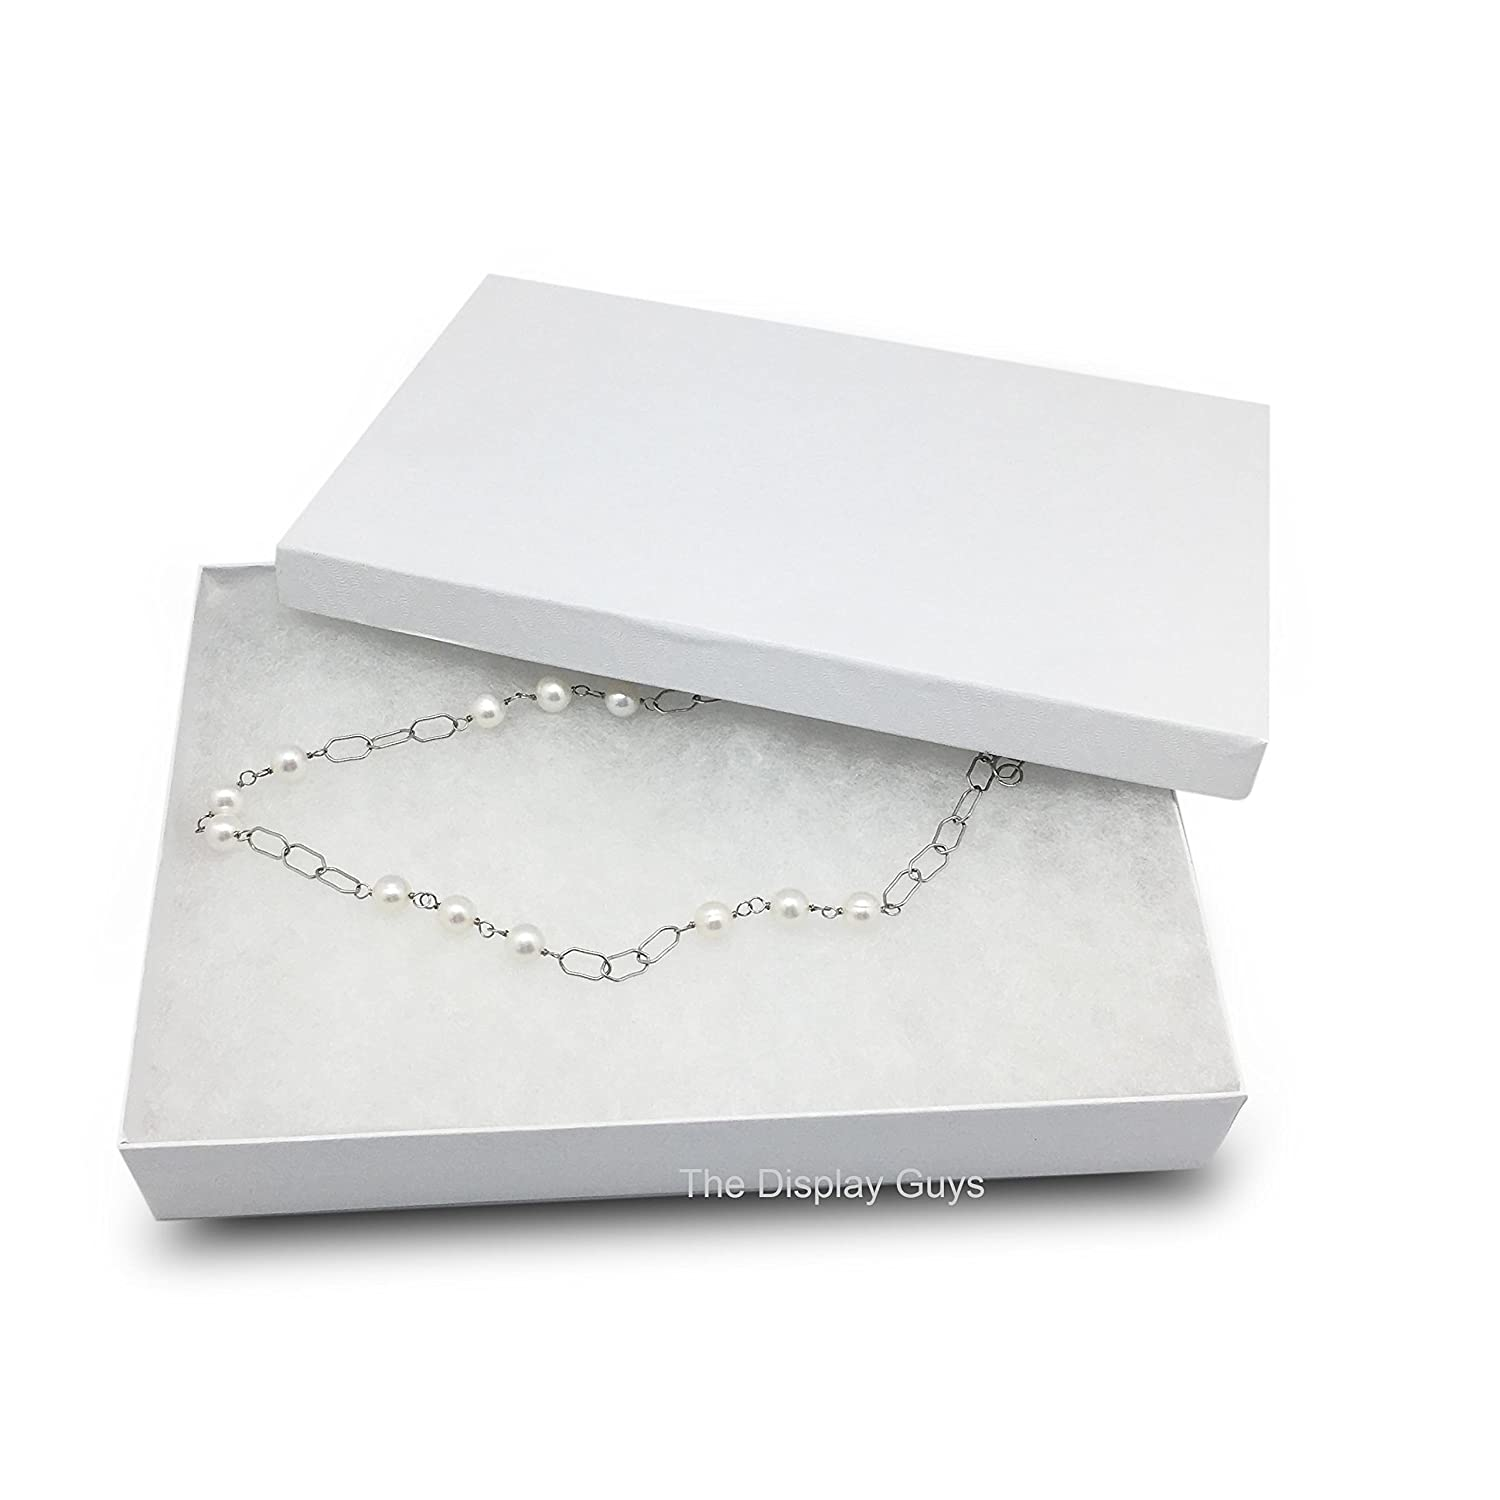 The Display Guys JPI Display Pack of 25 Kraft 5 3//8x3 7//8x1inches Cotton Filled Paper Jewelry Box Gift Display Case #53